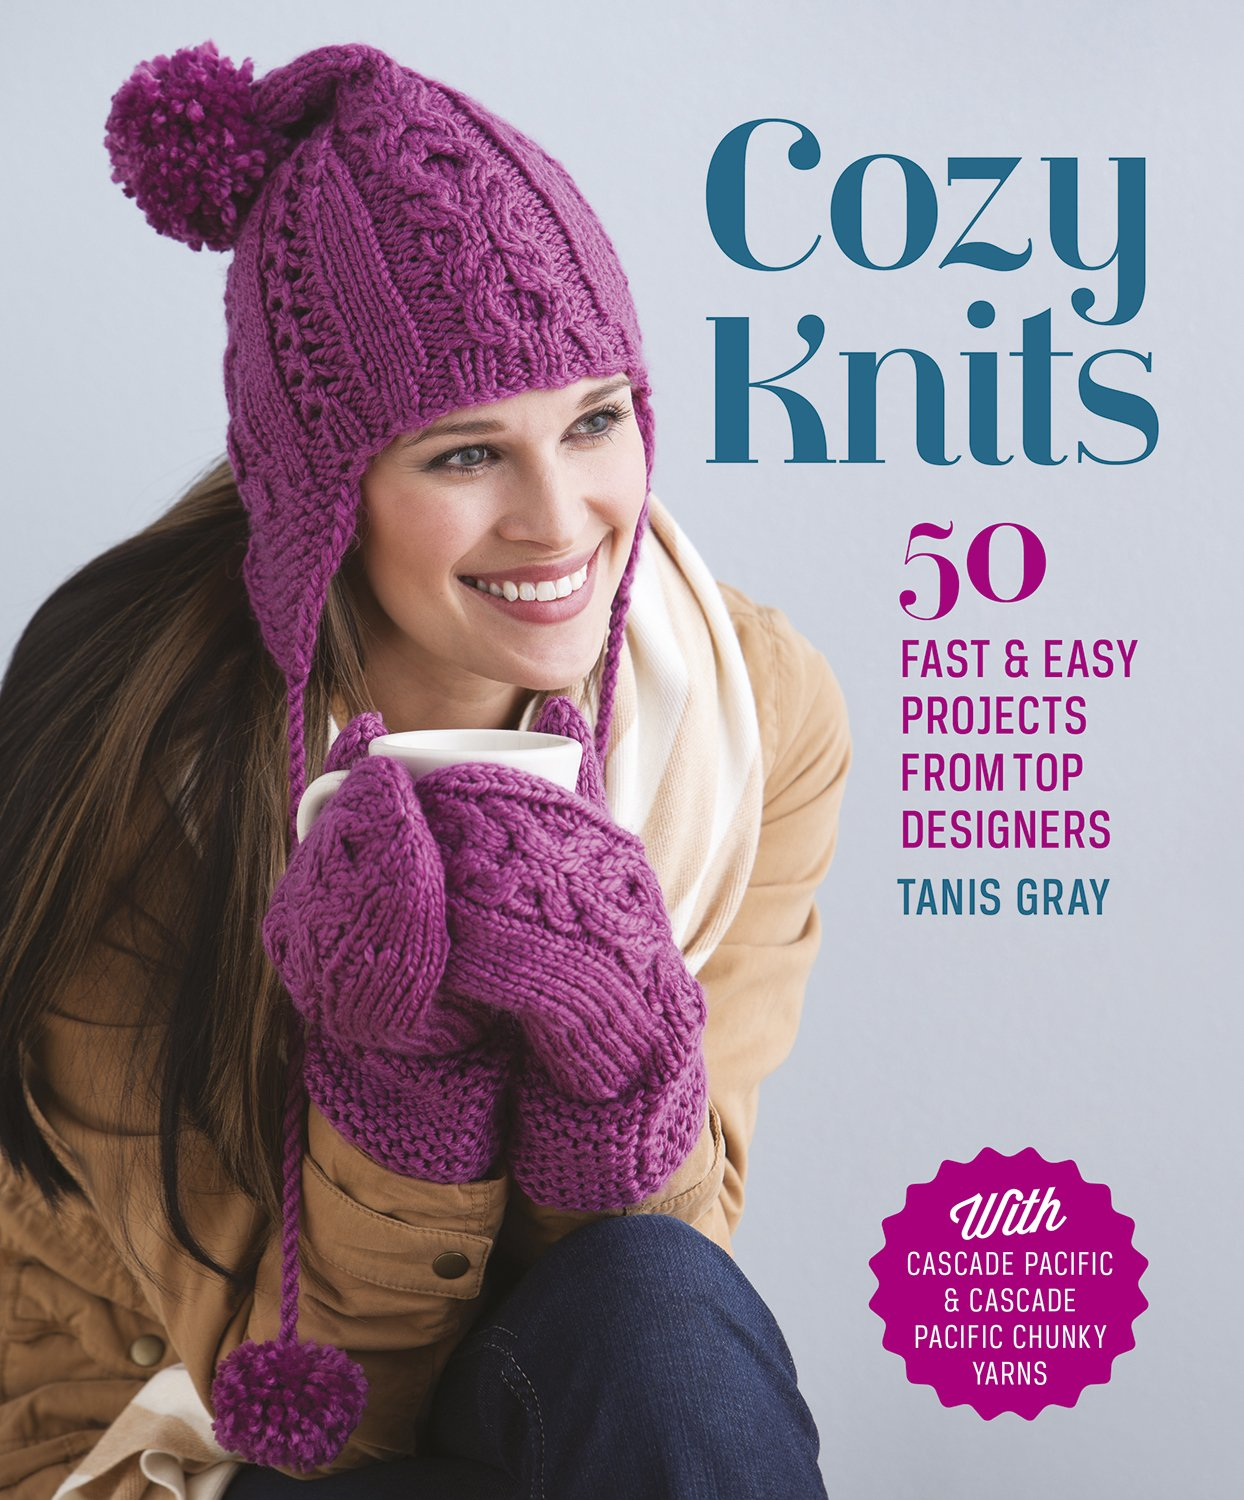 Cozy Knits Fast Projects Designers